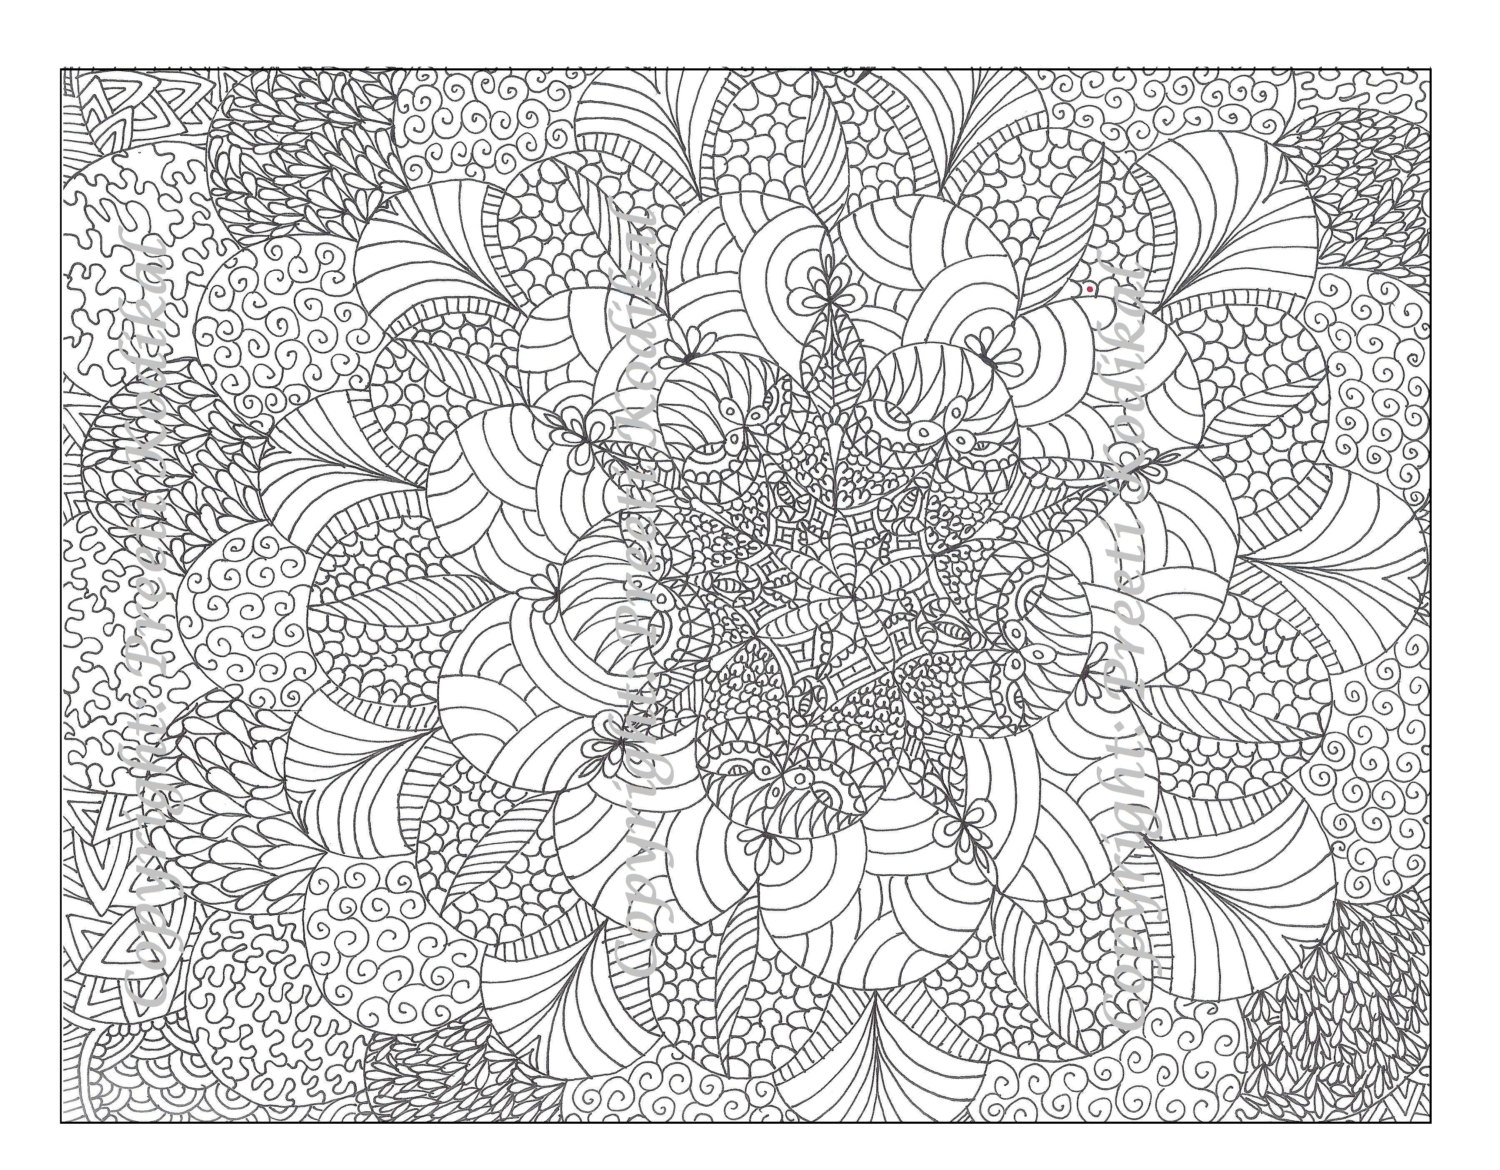 Coloring pictures for adults - Detailed Coloring Pages Printable